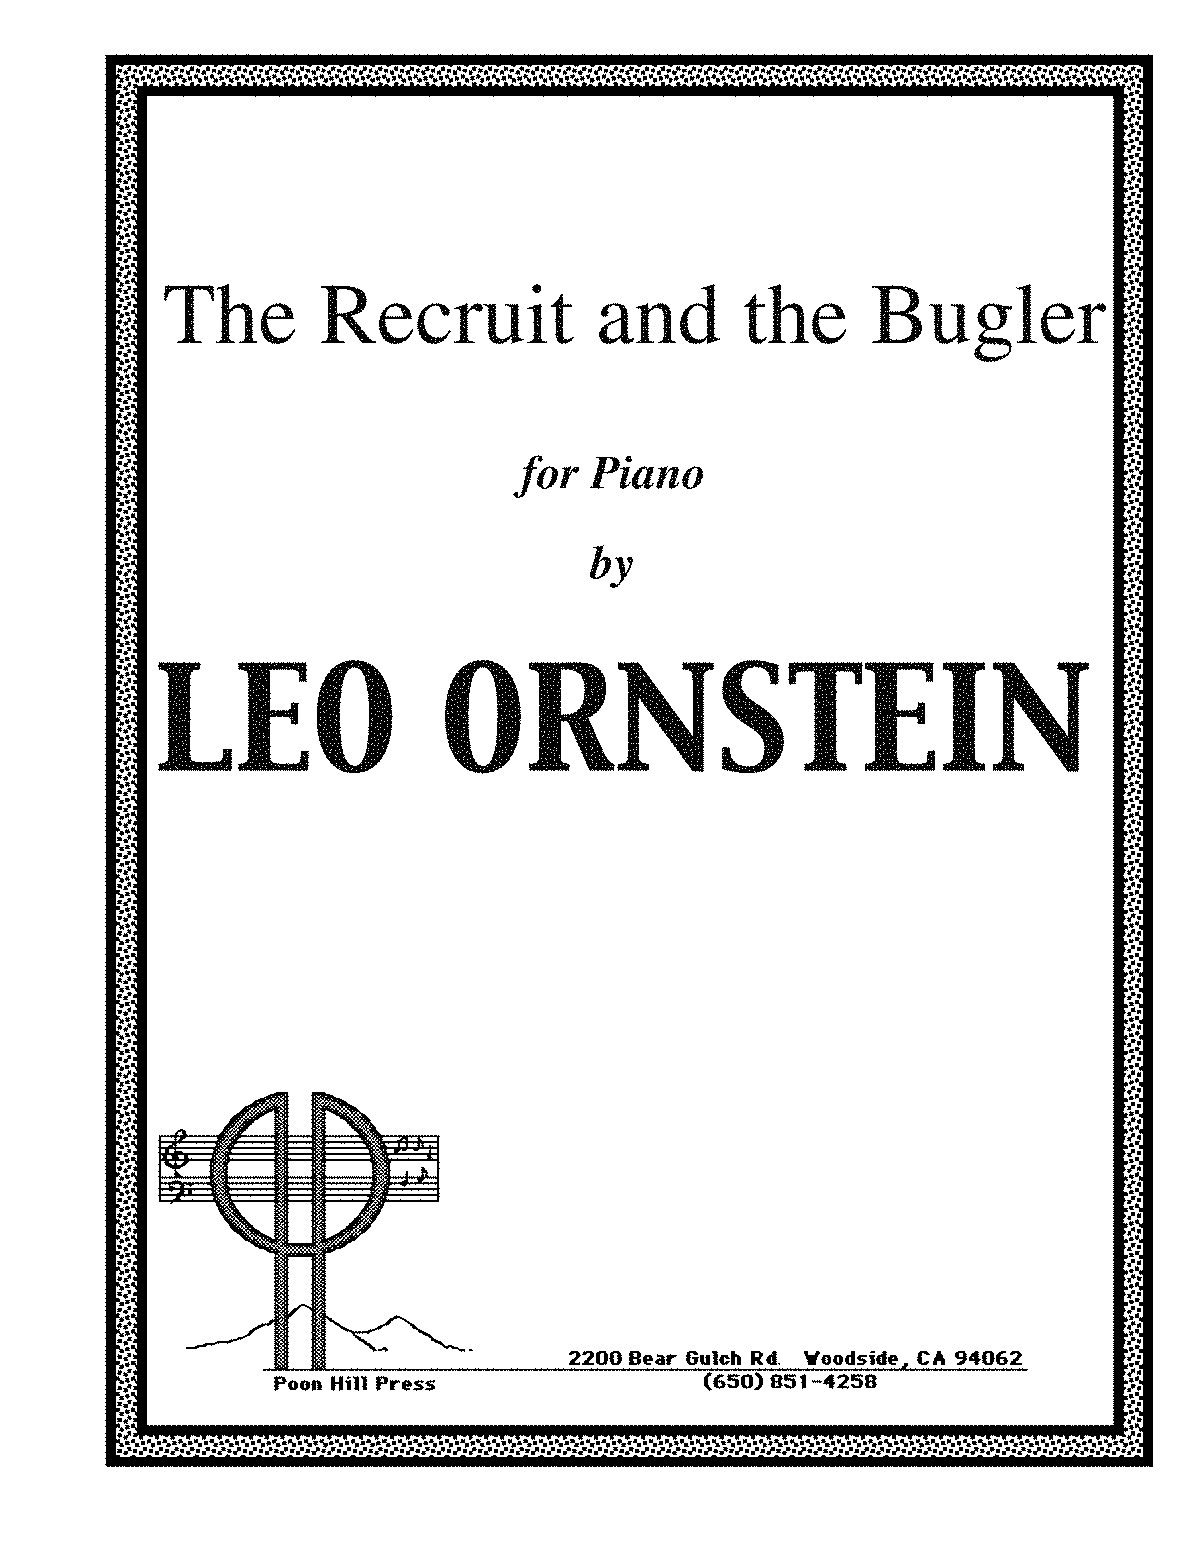 S117 - Recruit and Bugler.pdf